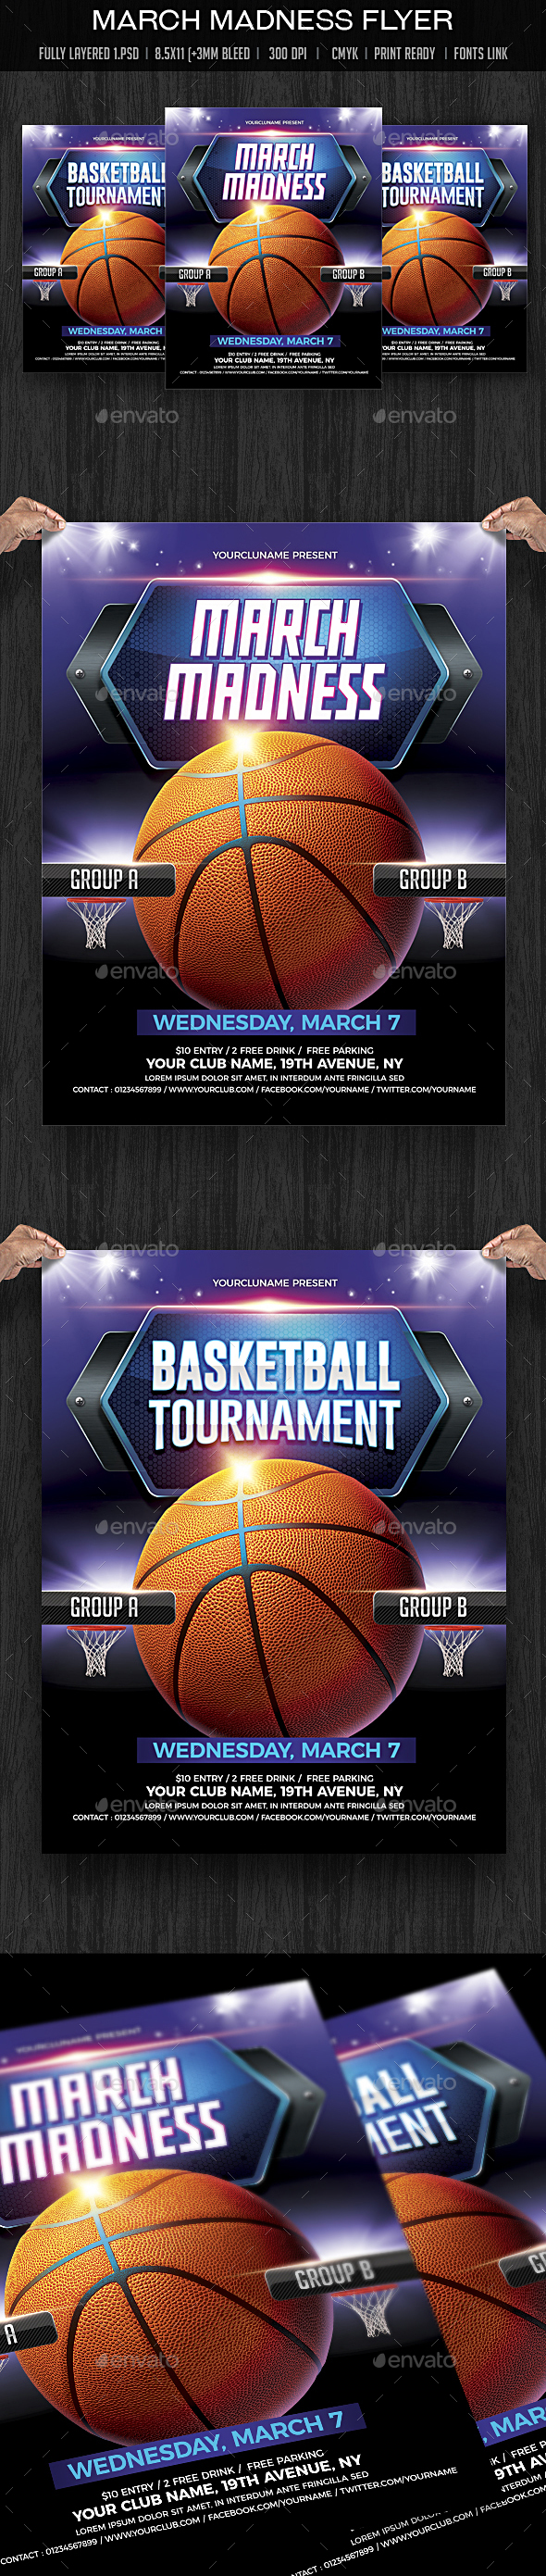 March Madness / Basketball Madness - Sports Events